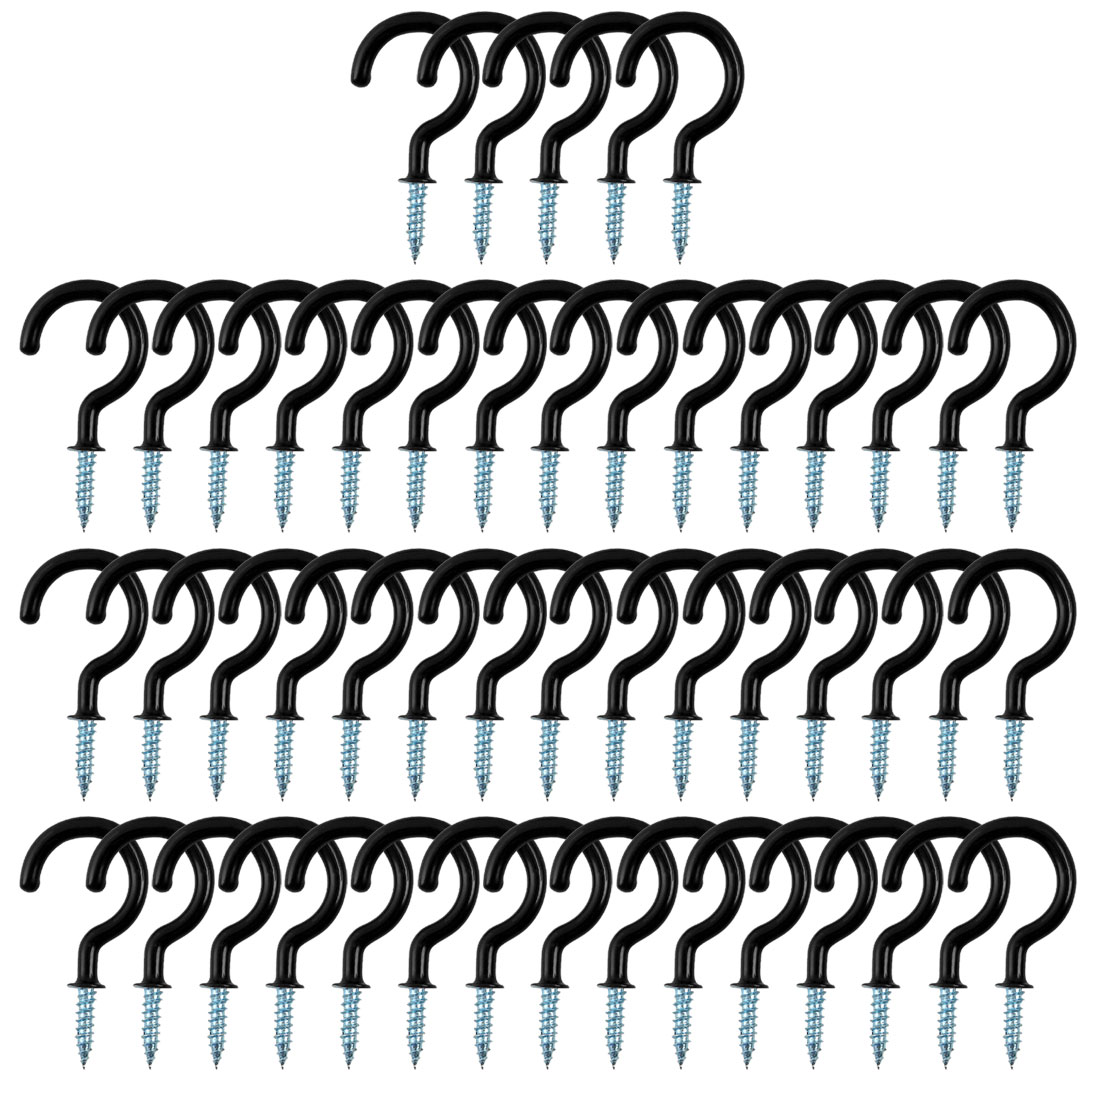 50pcs Cup Ceiling Hooks 1-1/2 Inch Metal with Vinyl Coated Screw in Holder Black